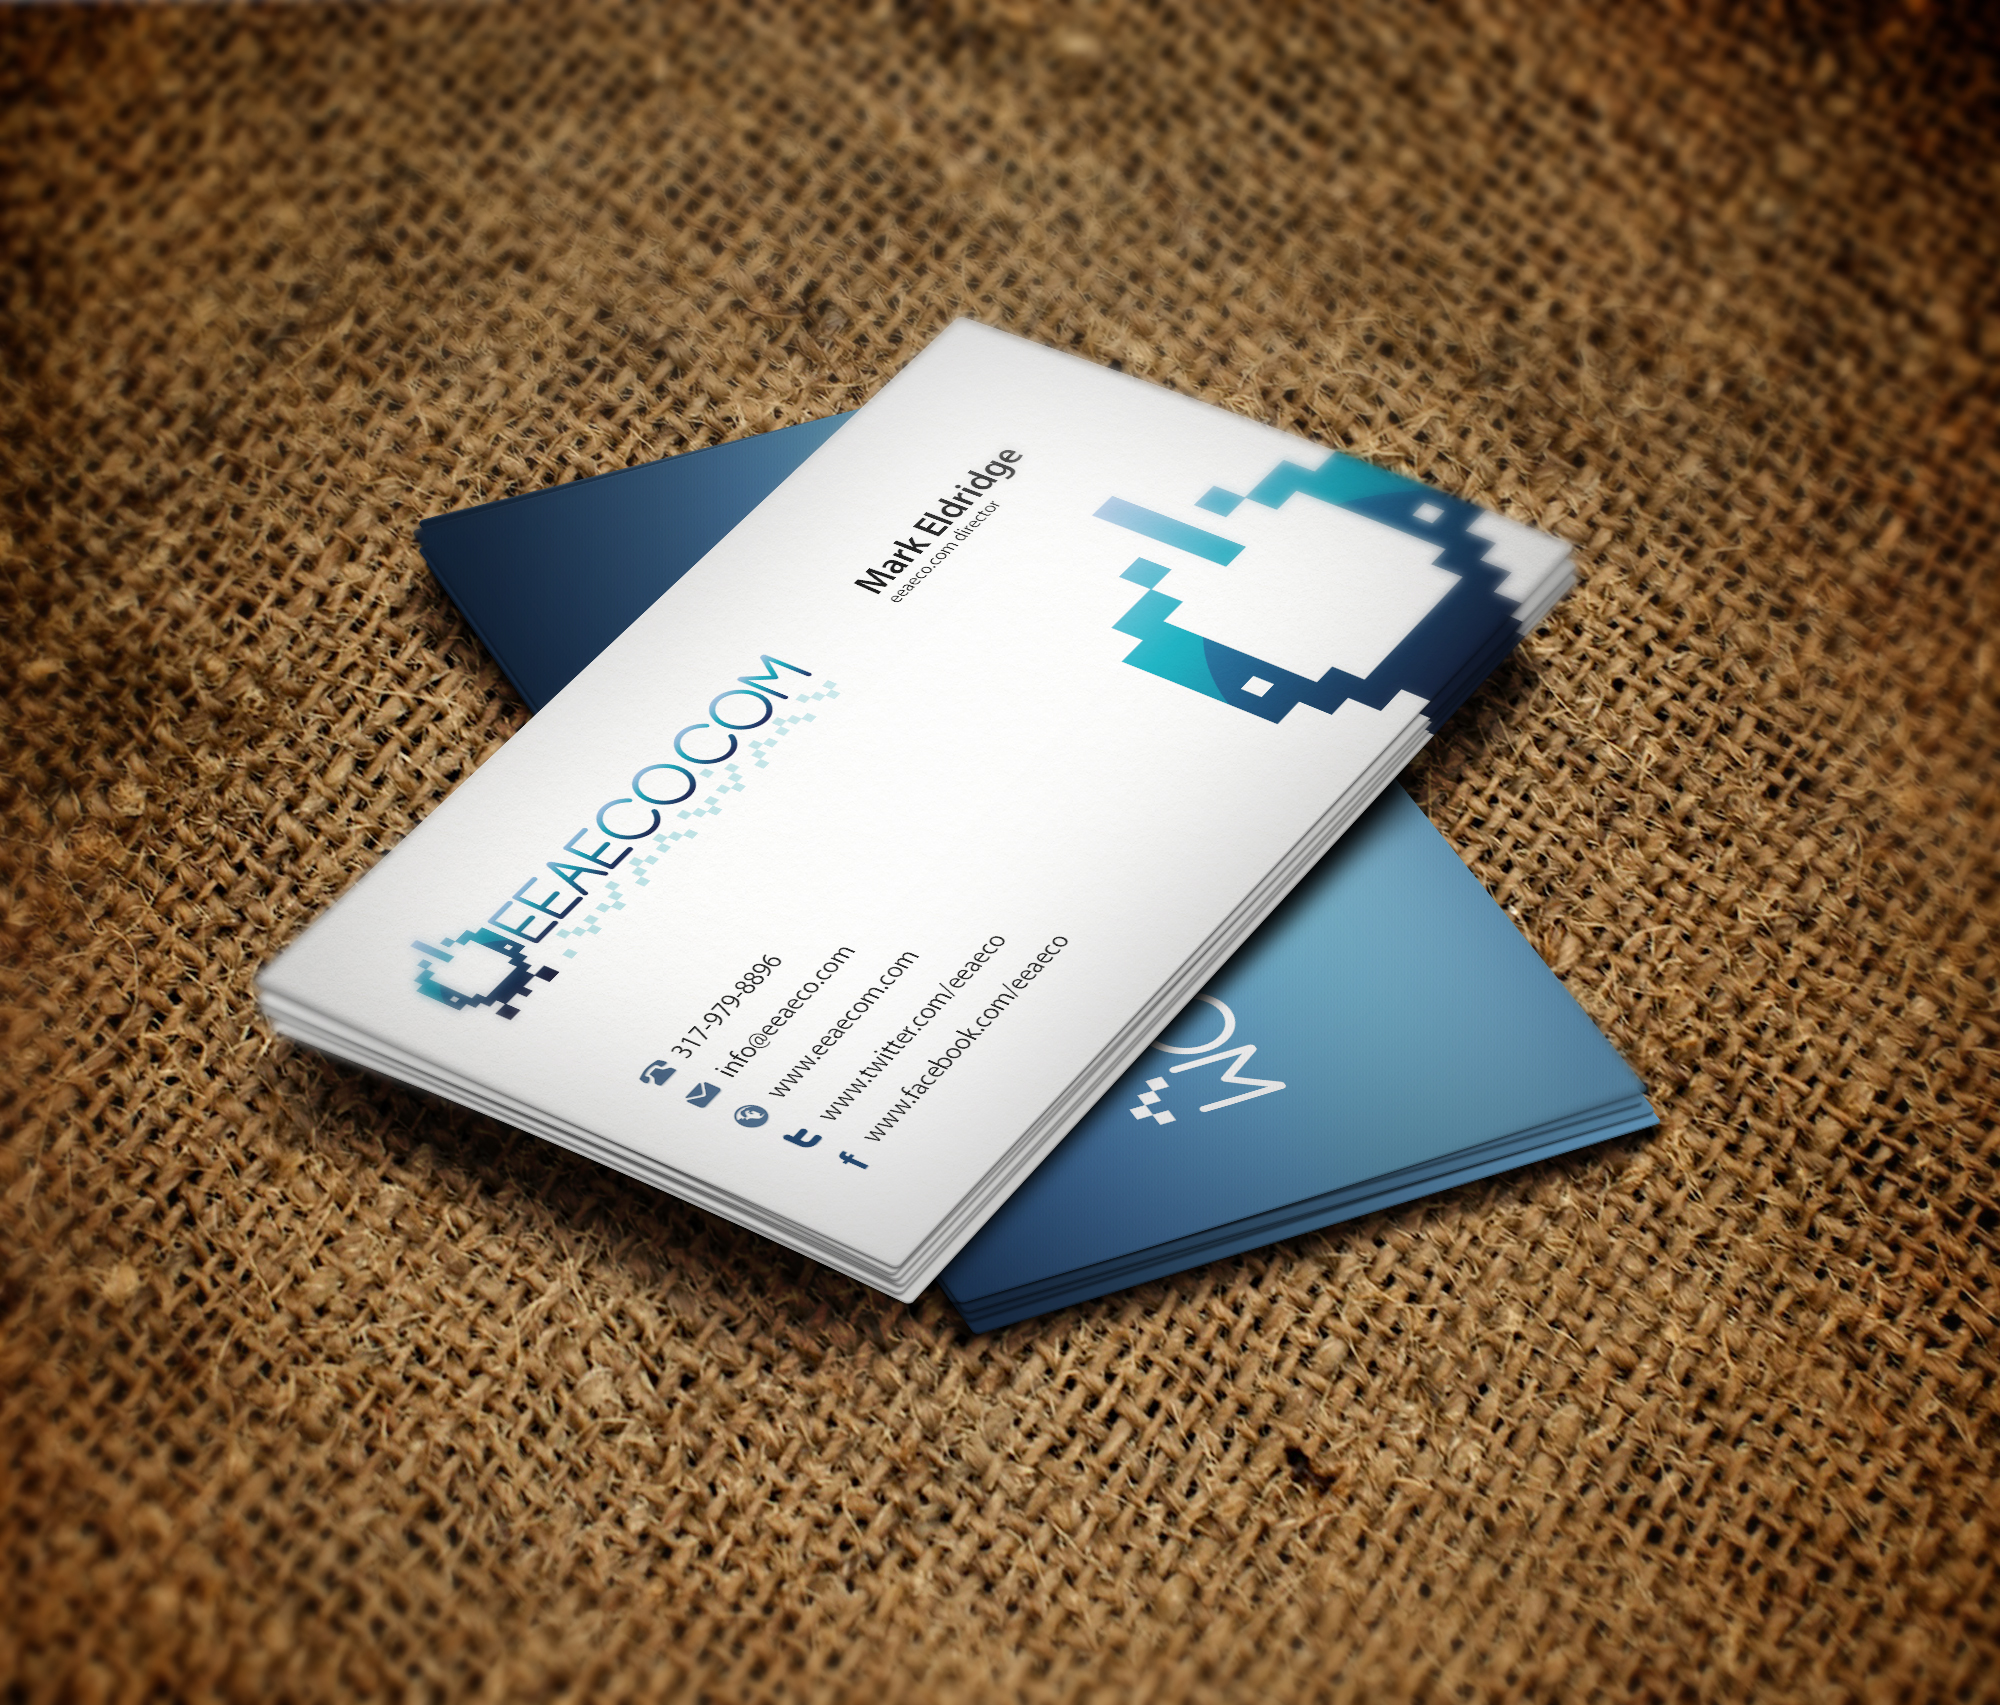 EEAECO.com Business Card Design by vasiligfx on DeviantArt